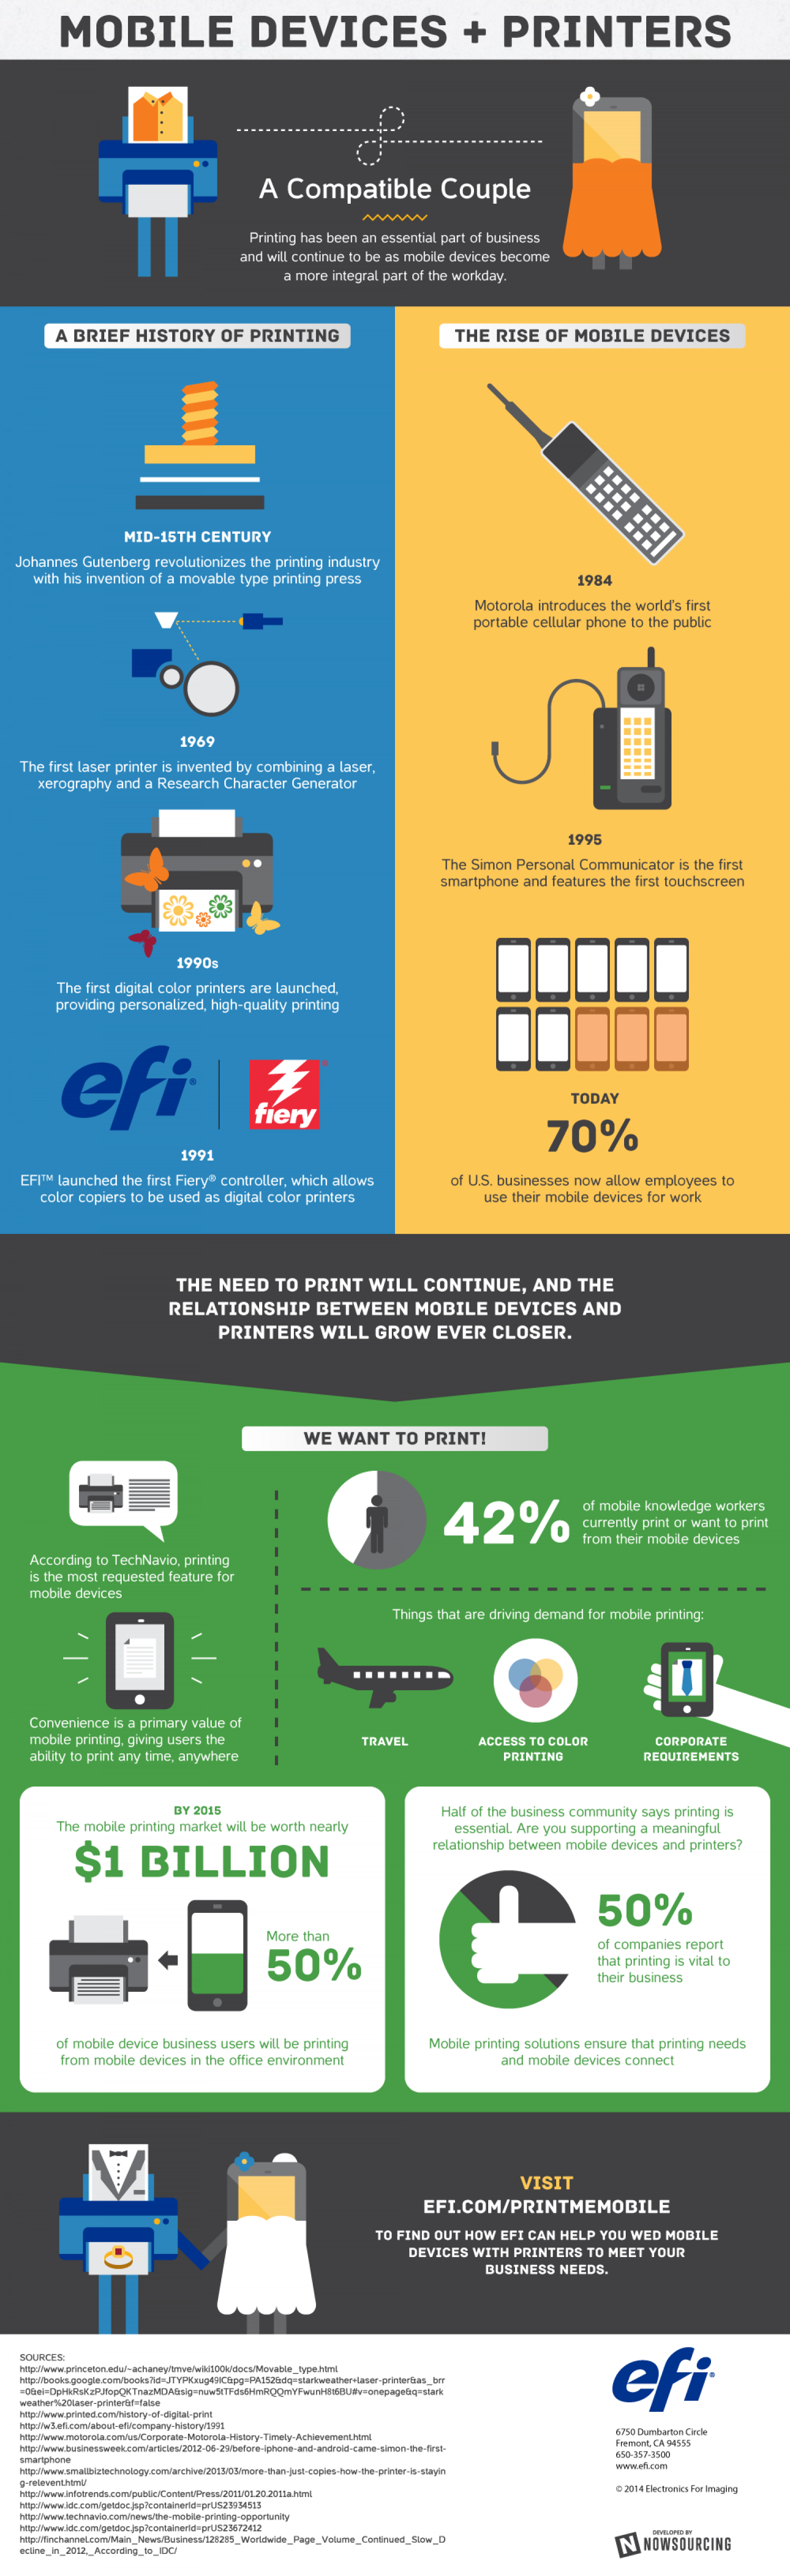 Mobile Devices and Printers: A Compatible Couple Infographic